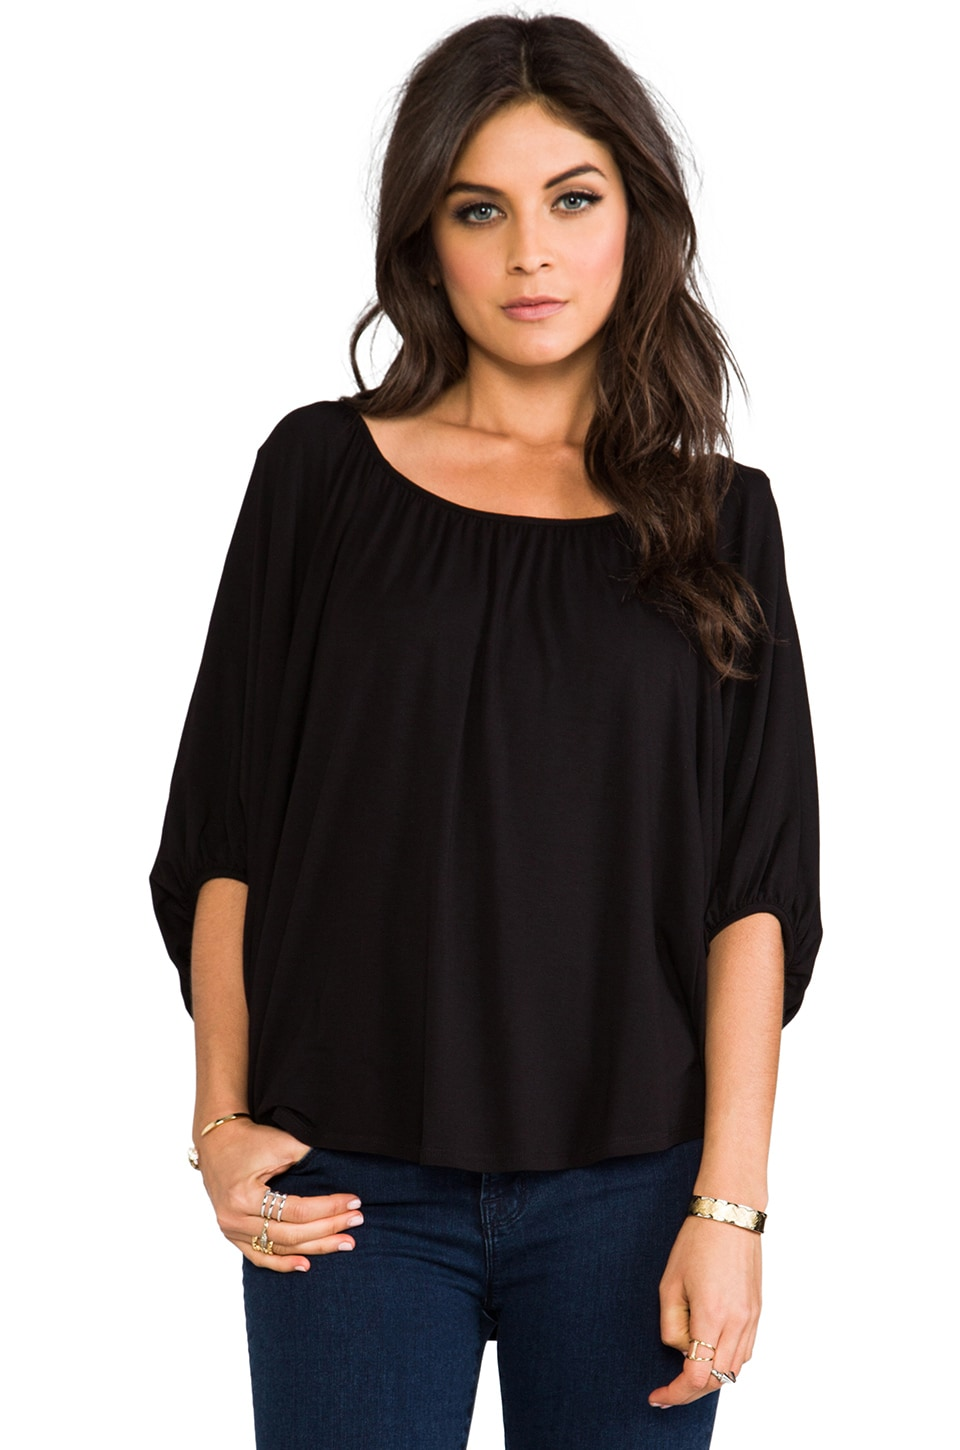 James & Joy James Top in Black